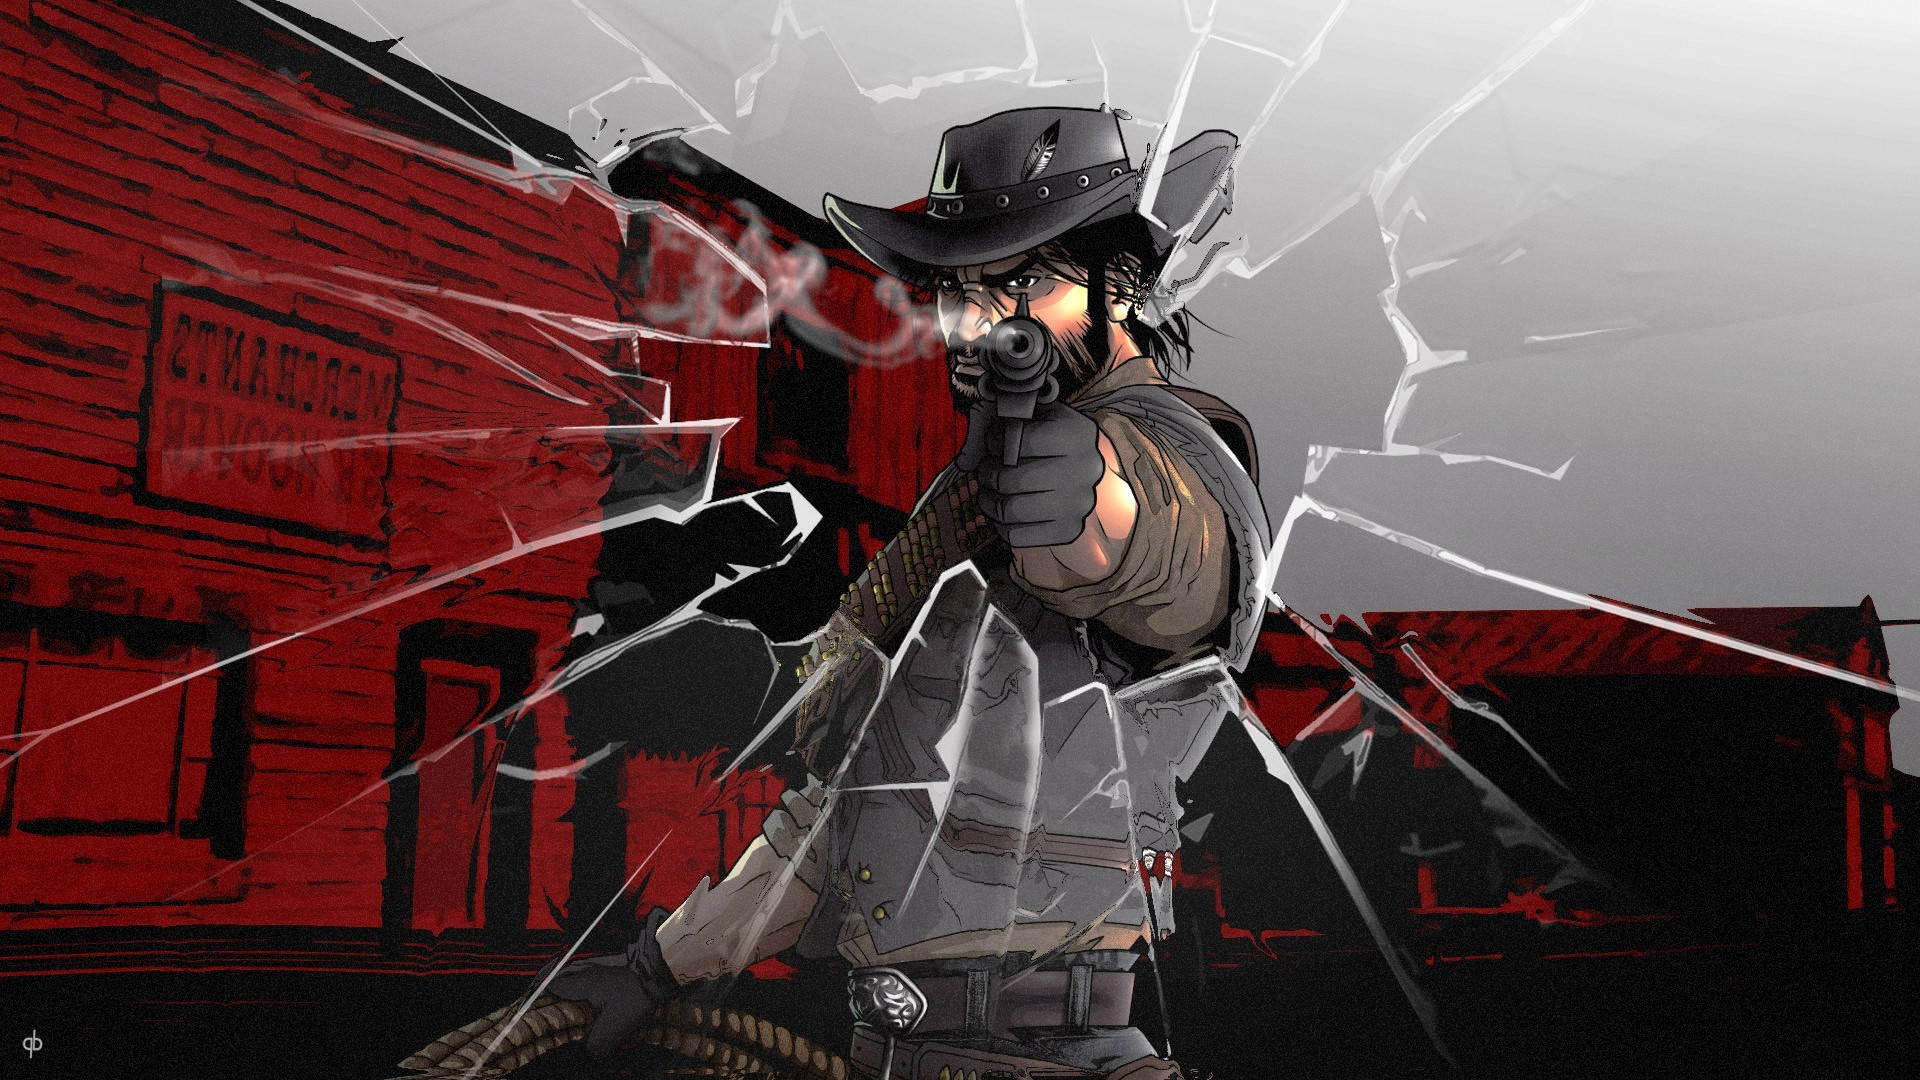 Free Download Red Dead Redemption Wallpapers Images Photos